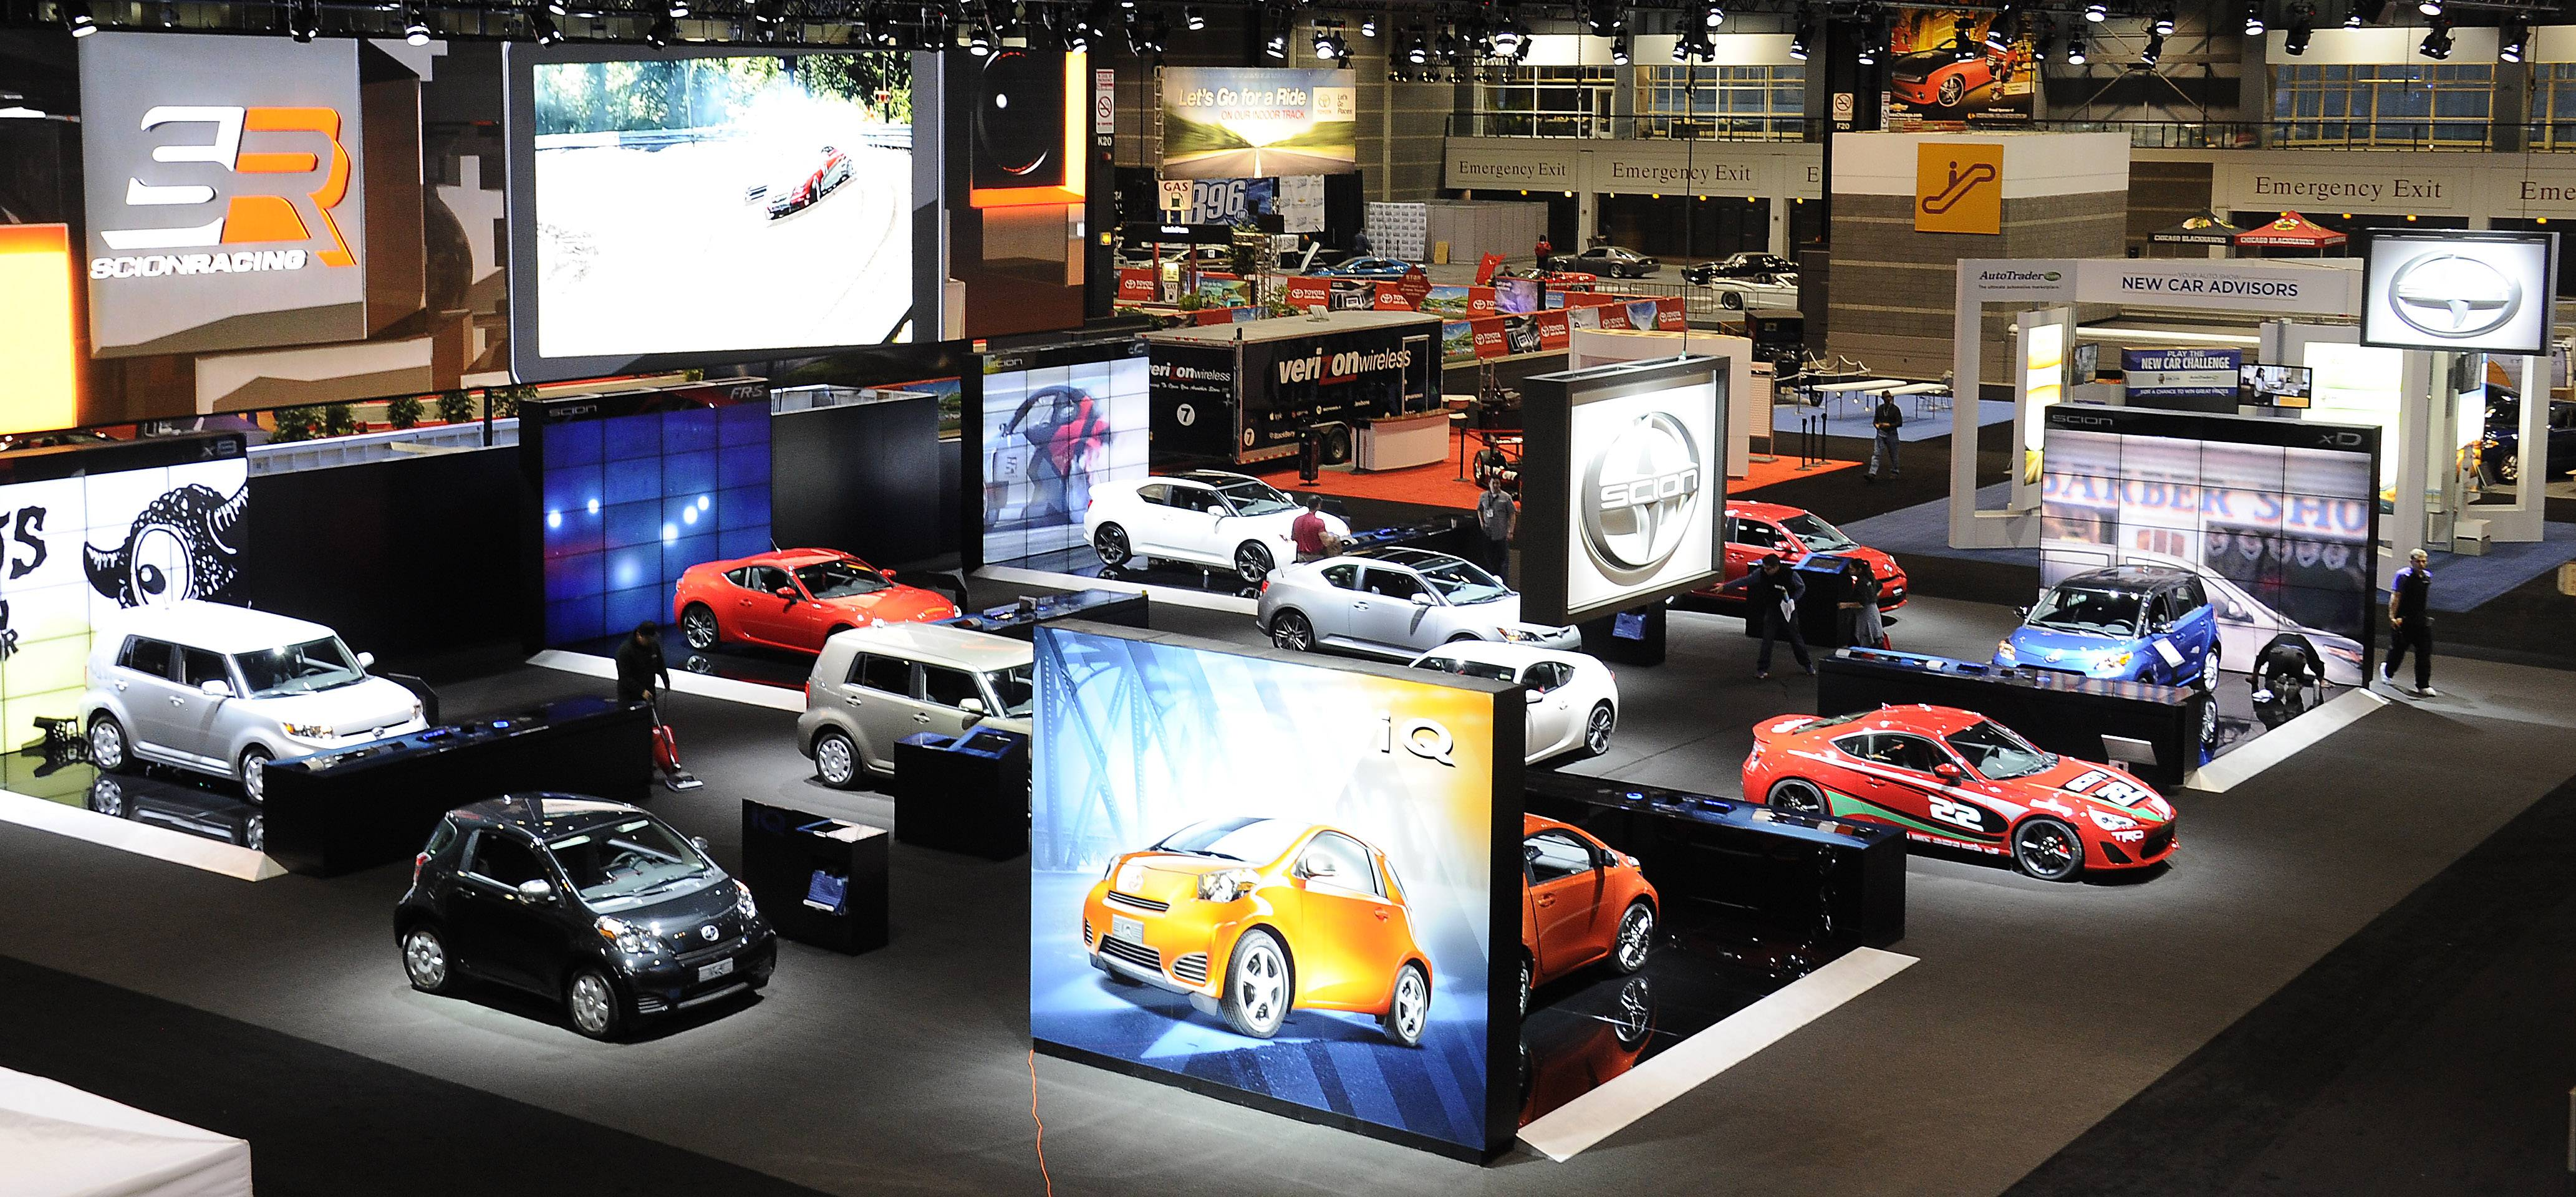 The Chicago Auto Show at McCormick Place helped Illinois set a record for tourism in 2013.